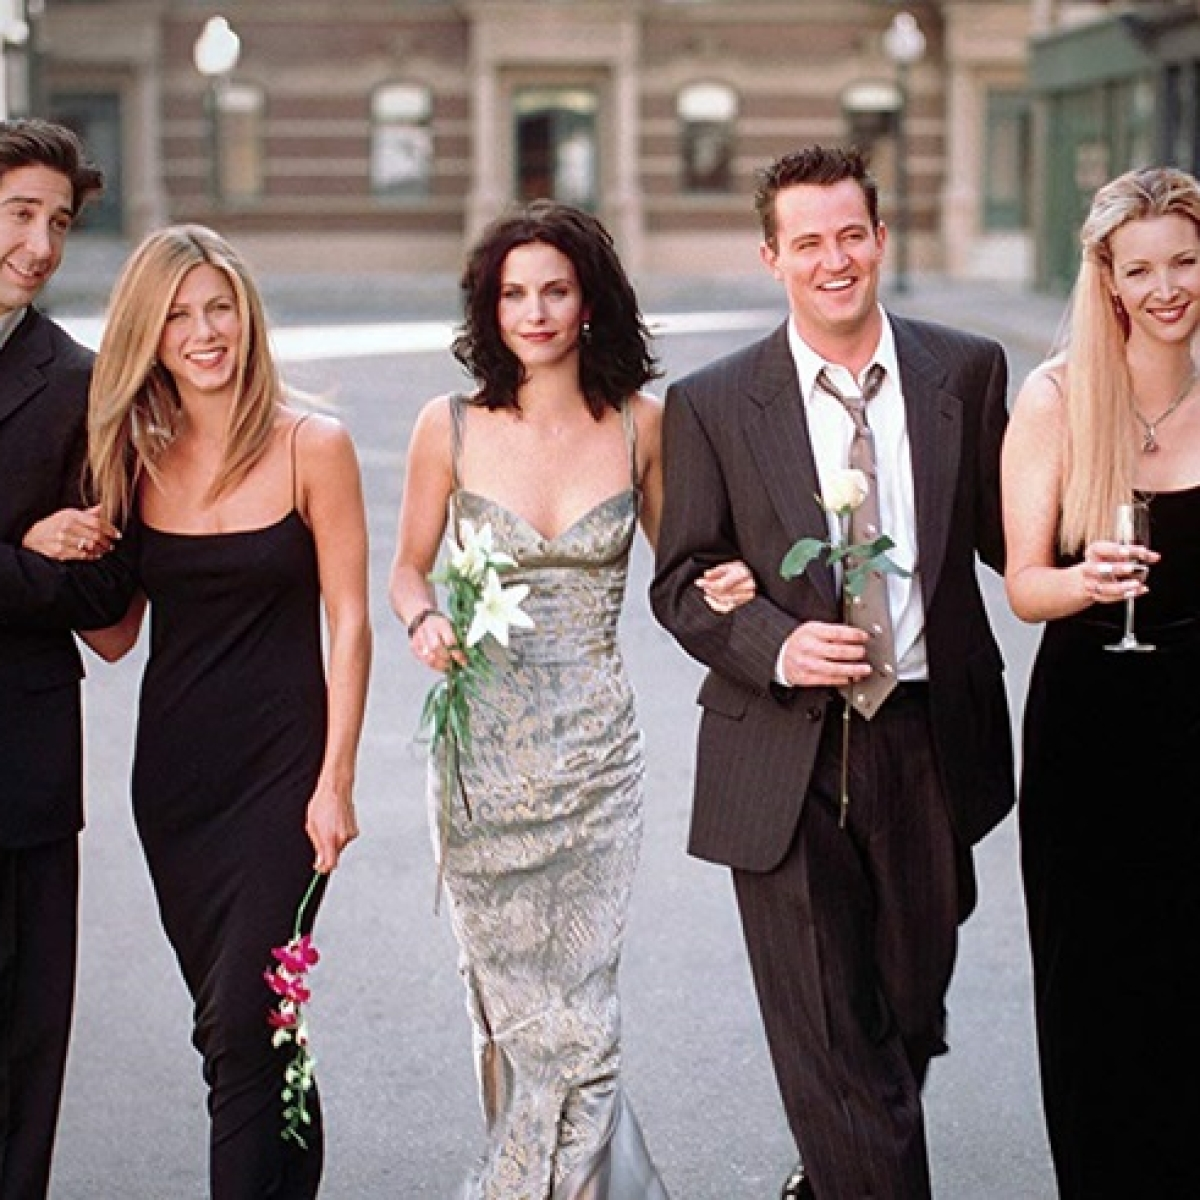 'Friends' reunion special offer to allow one fan to meet the entire cast of the iconic sitcom!